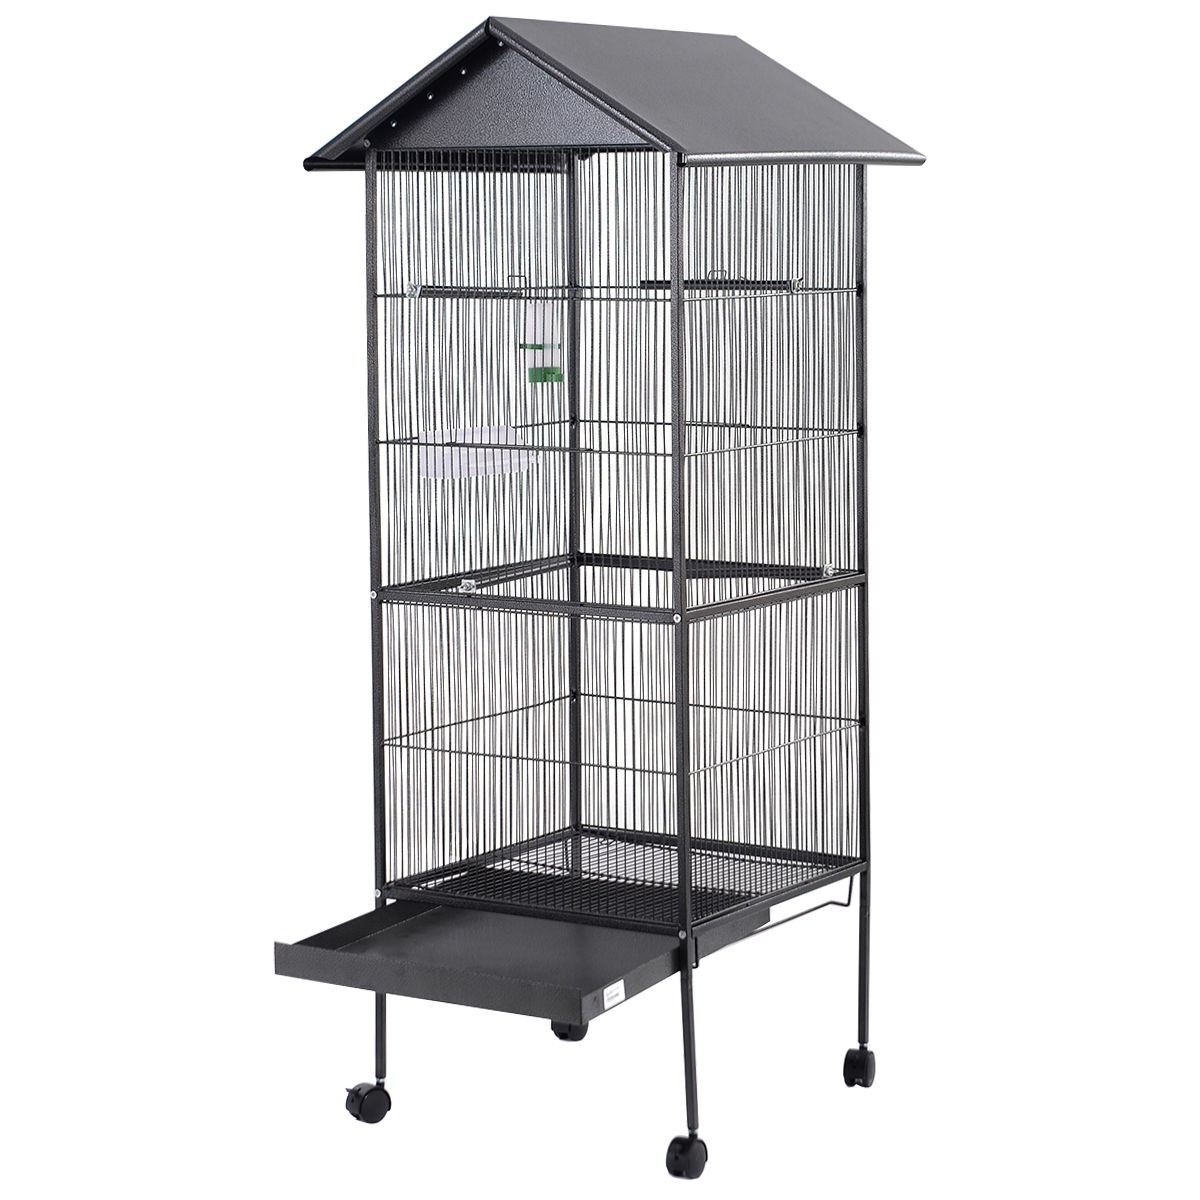 parrot canary pet bird cage black cockatiel parakeet finch crate feeder perch ebay. Black Bedroom Furniture Sets. Home Design Ideas